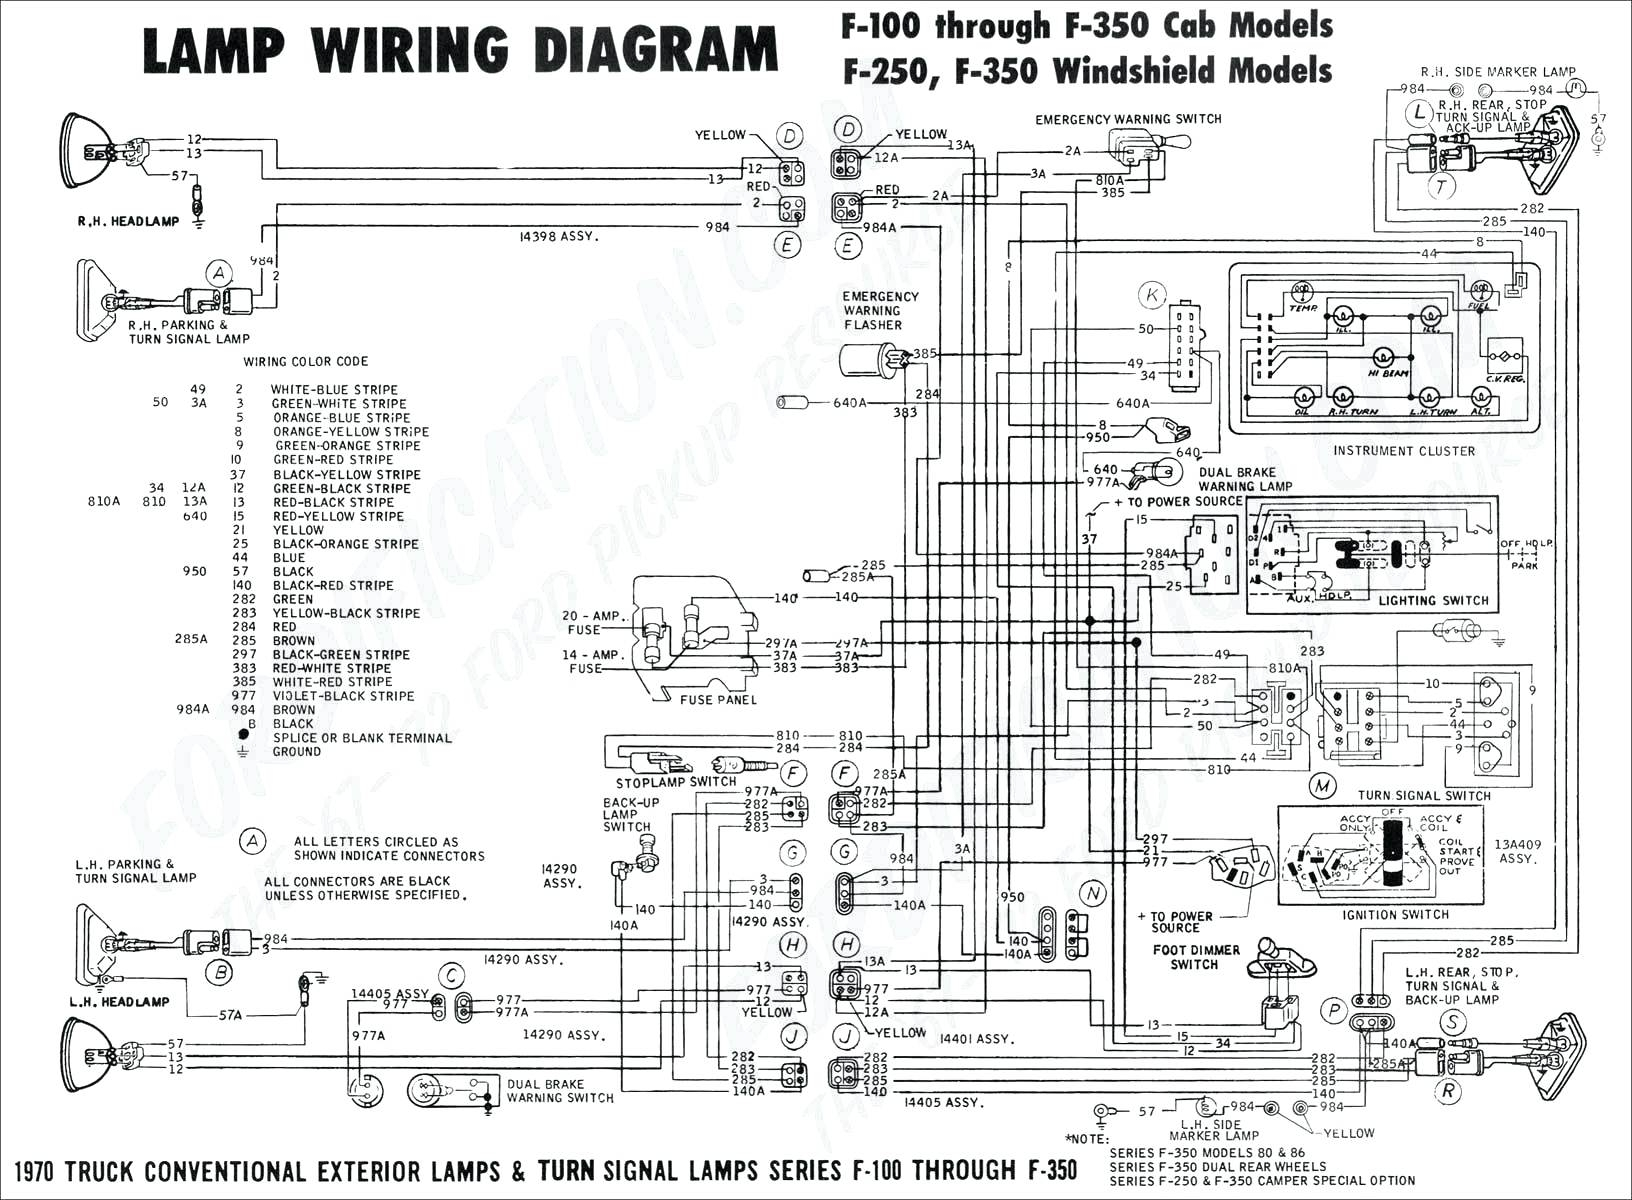 control module diagram for 1996 ford f 350 wiring diagram dash 1989 ford f350 radio wiring diagram 1989 ford f 350 wiring diagram #9